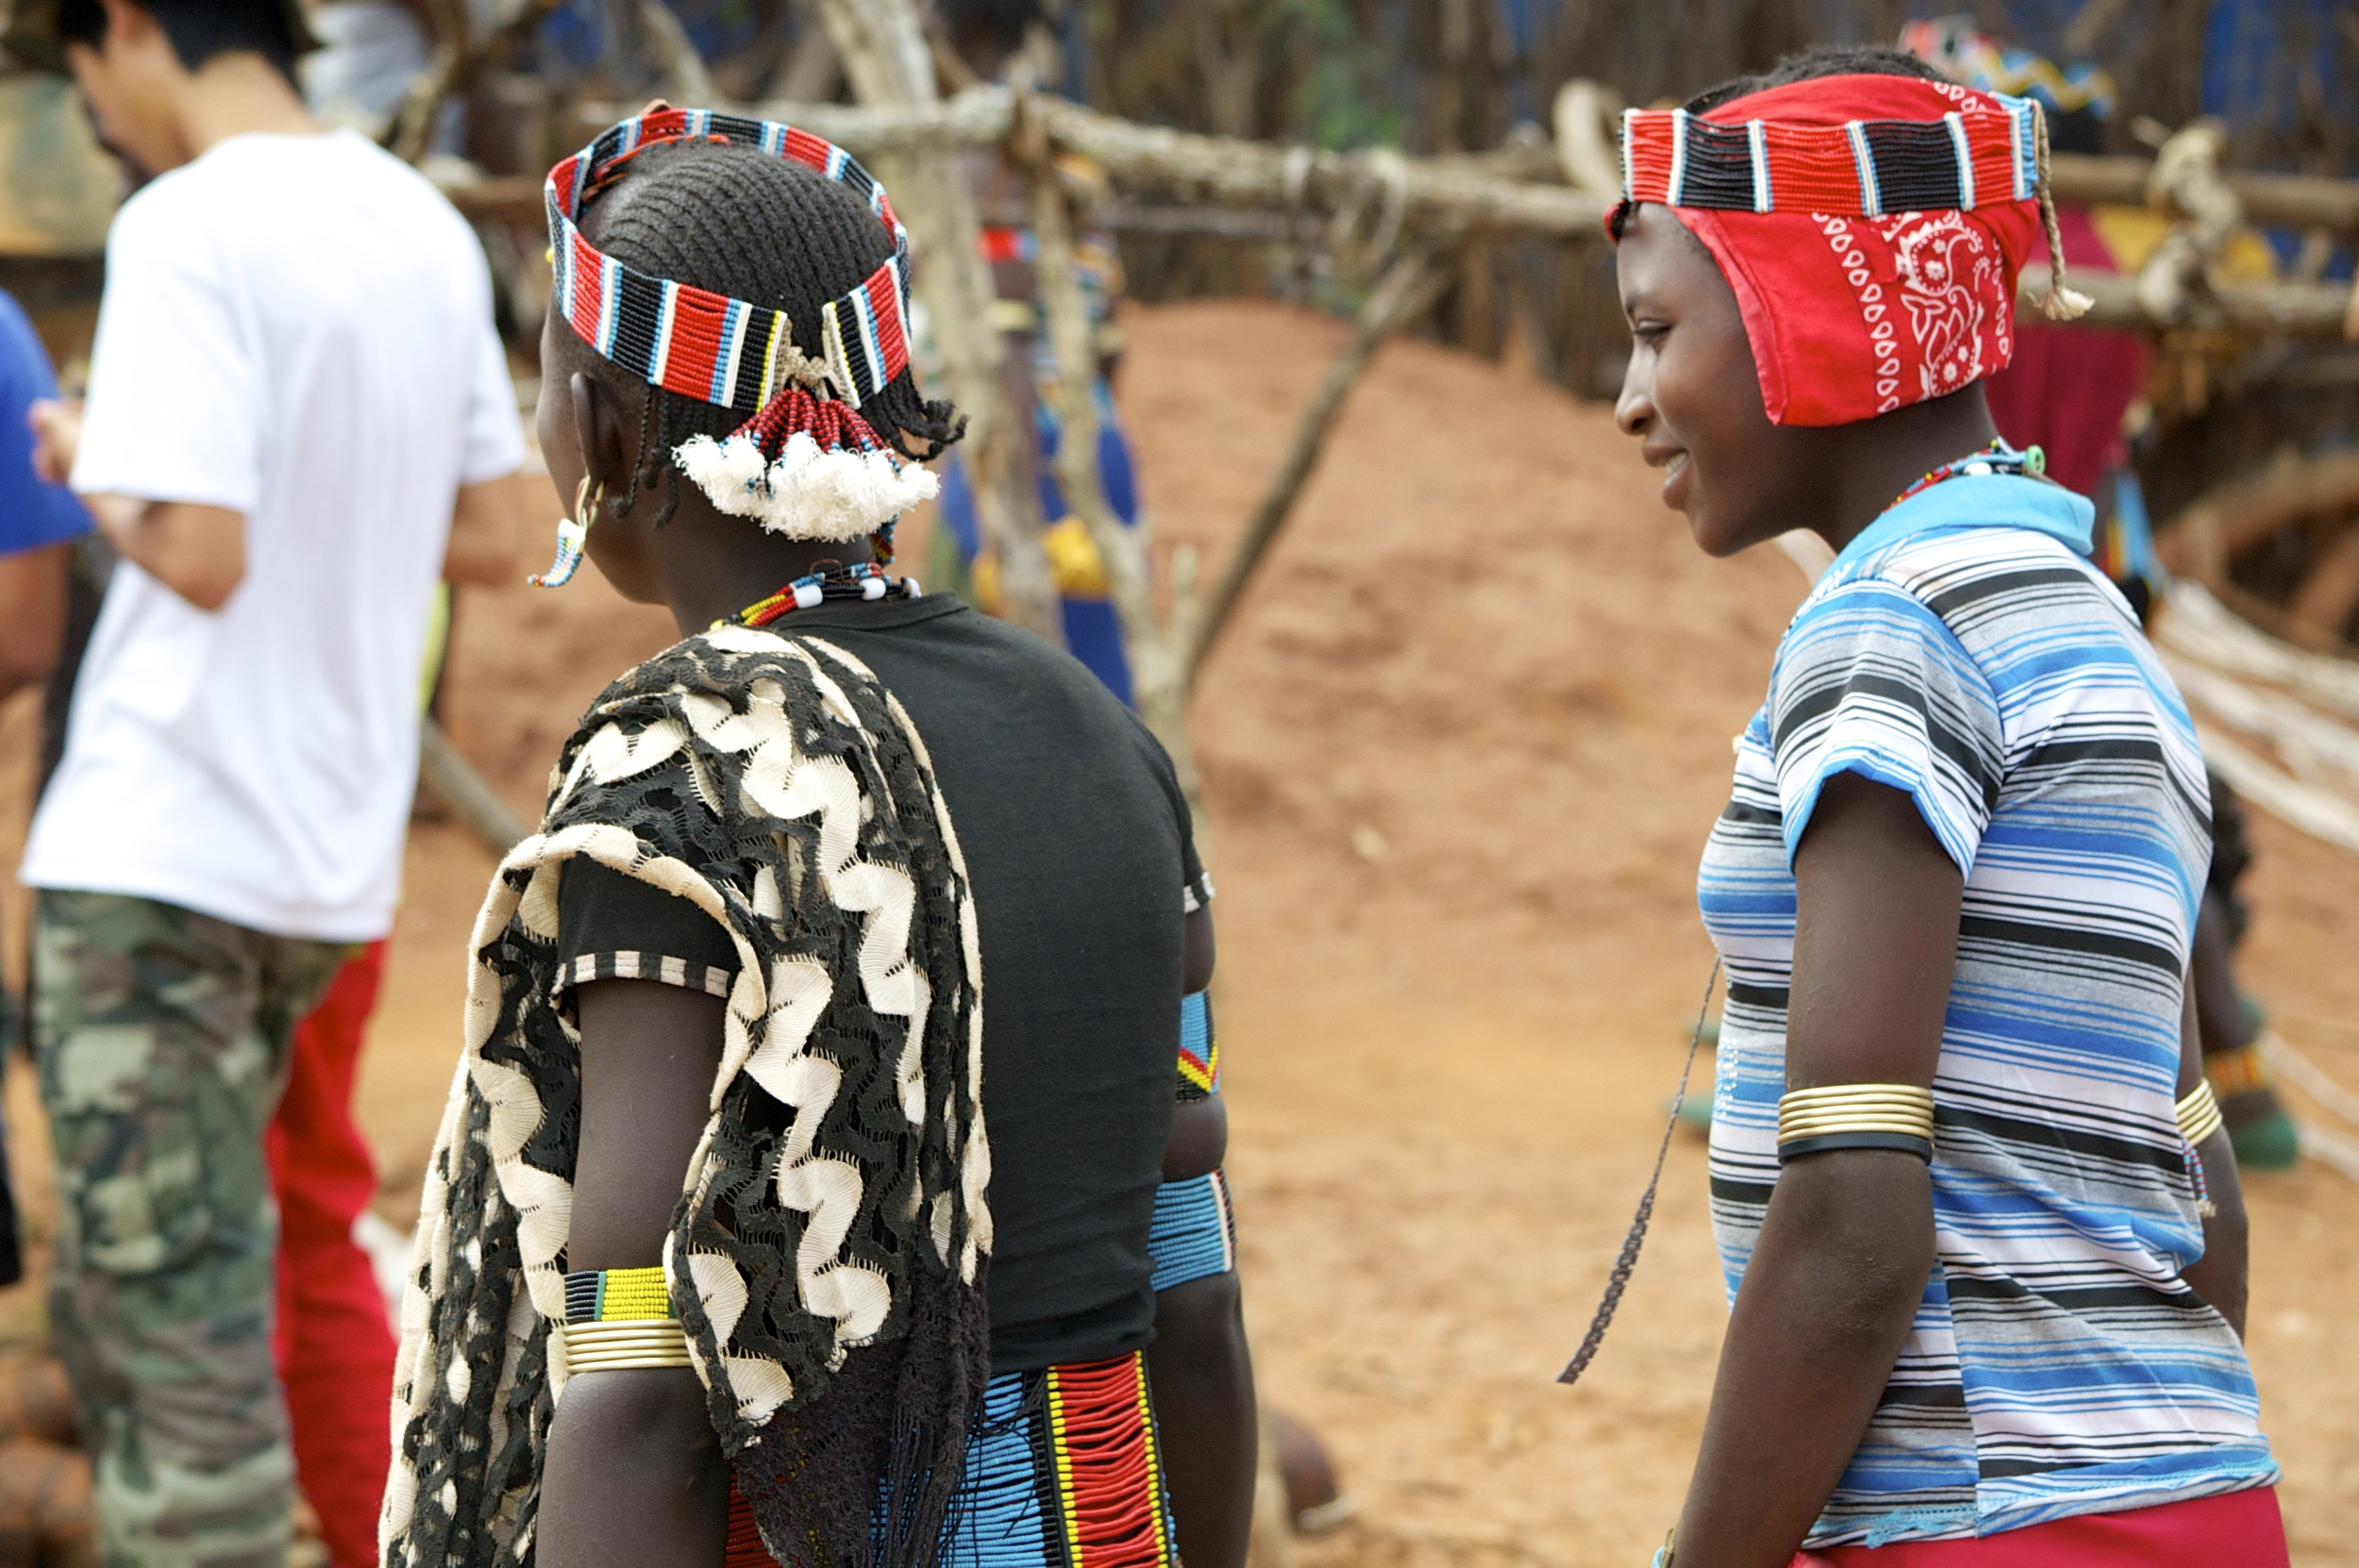 Men at the market place in the Omo Valley